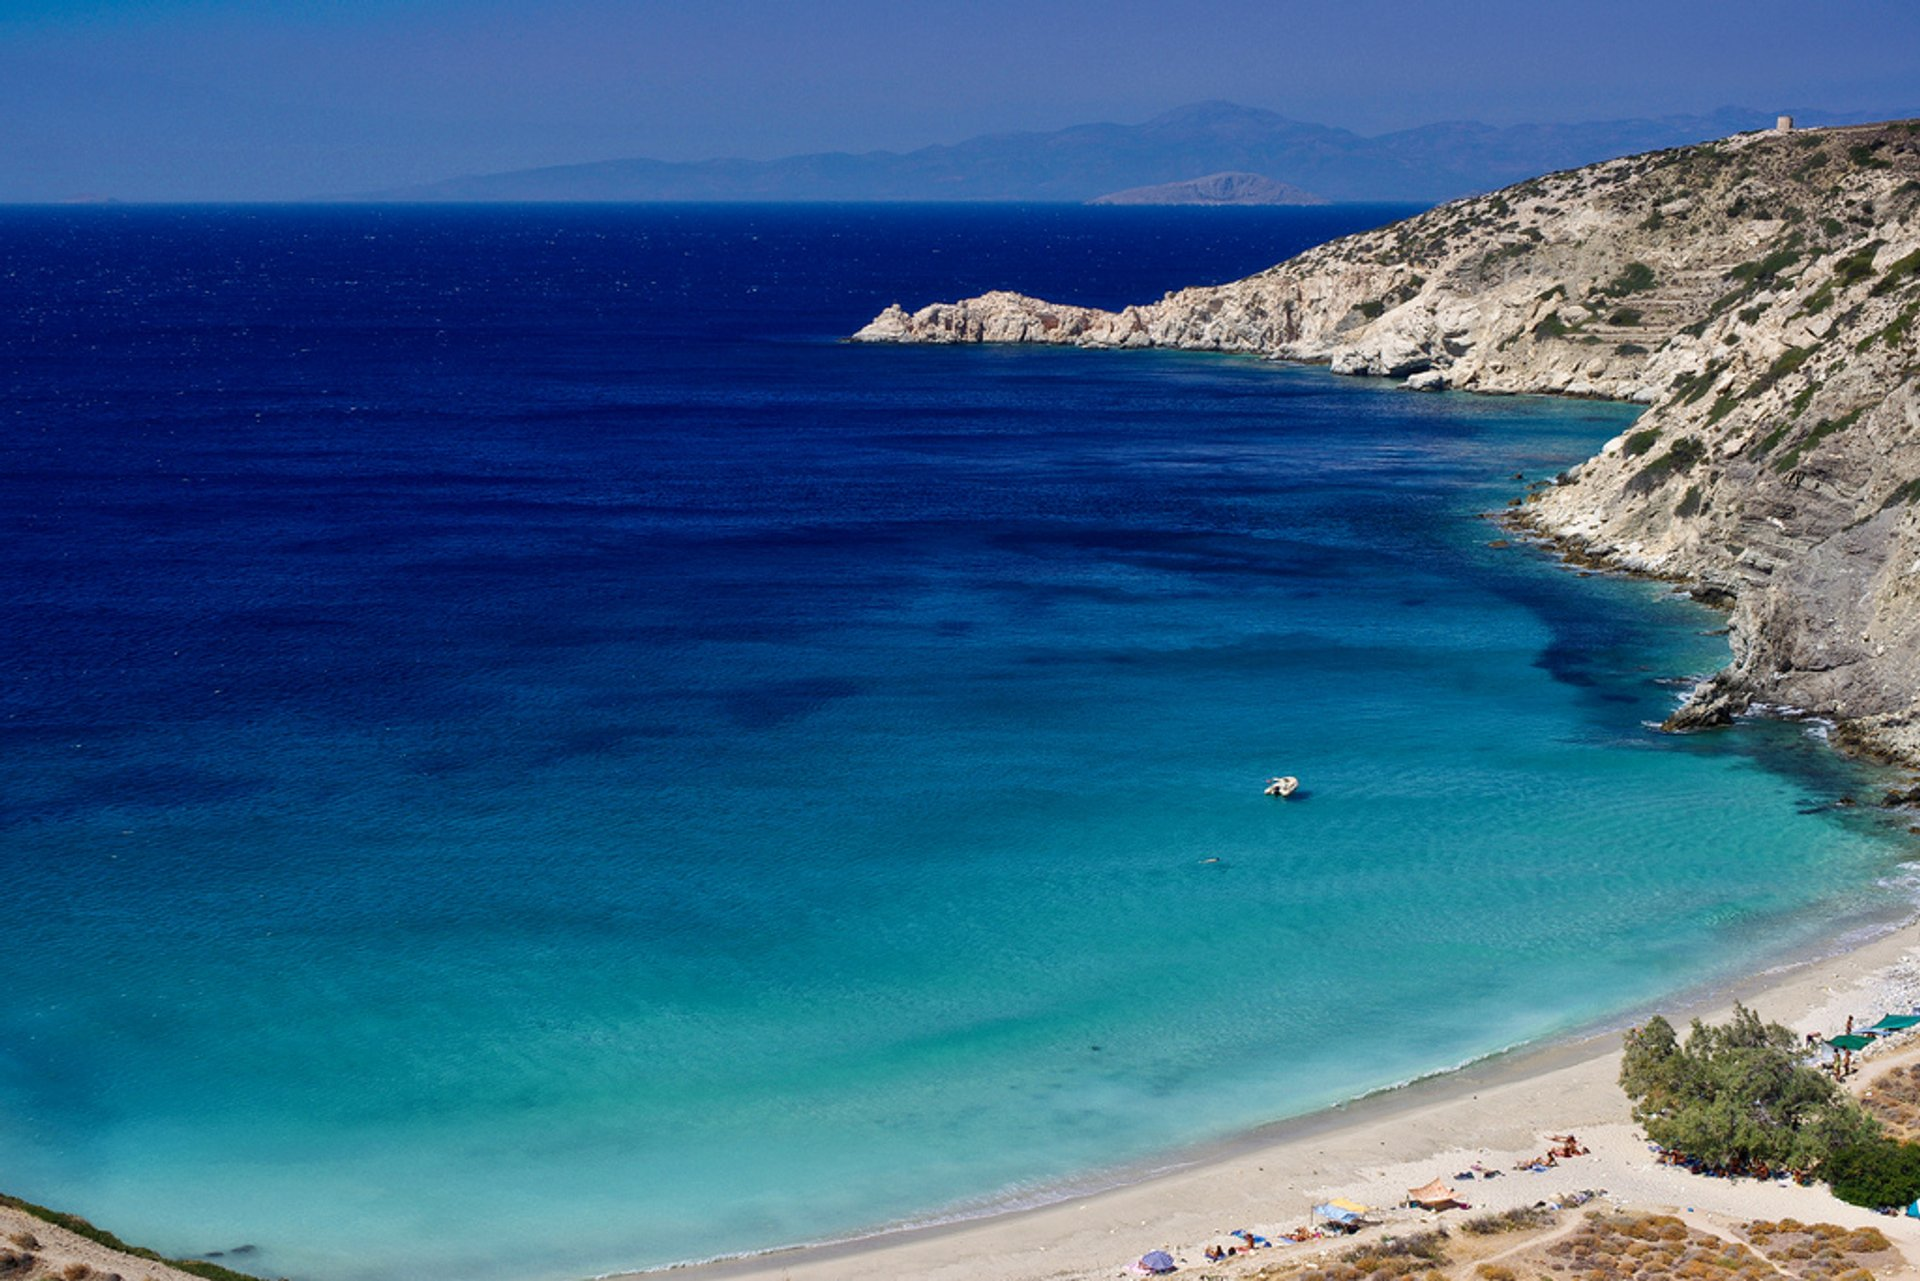 Beach Season in Greece 2019 - Best Time